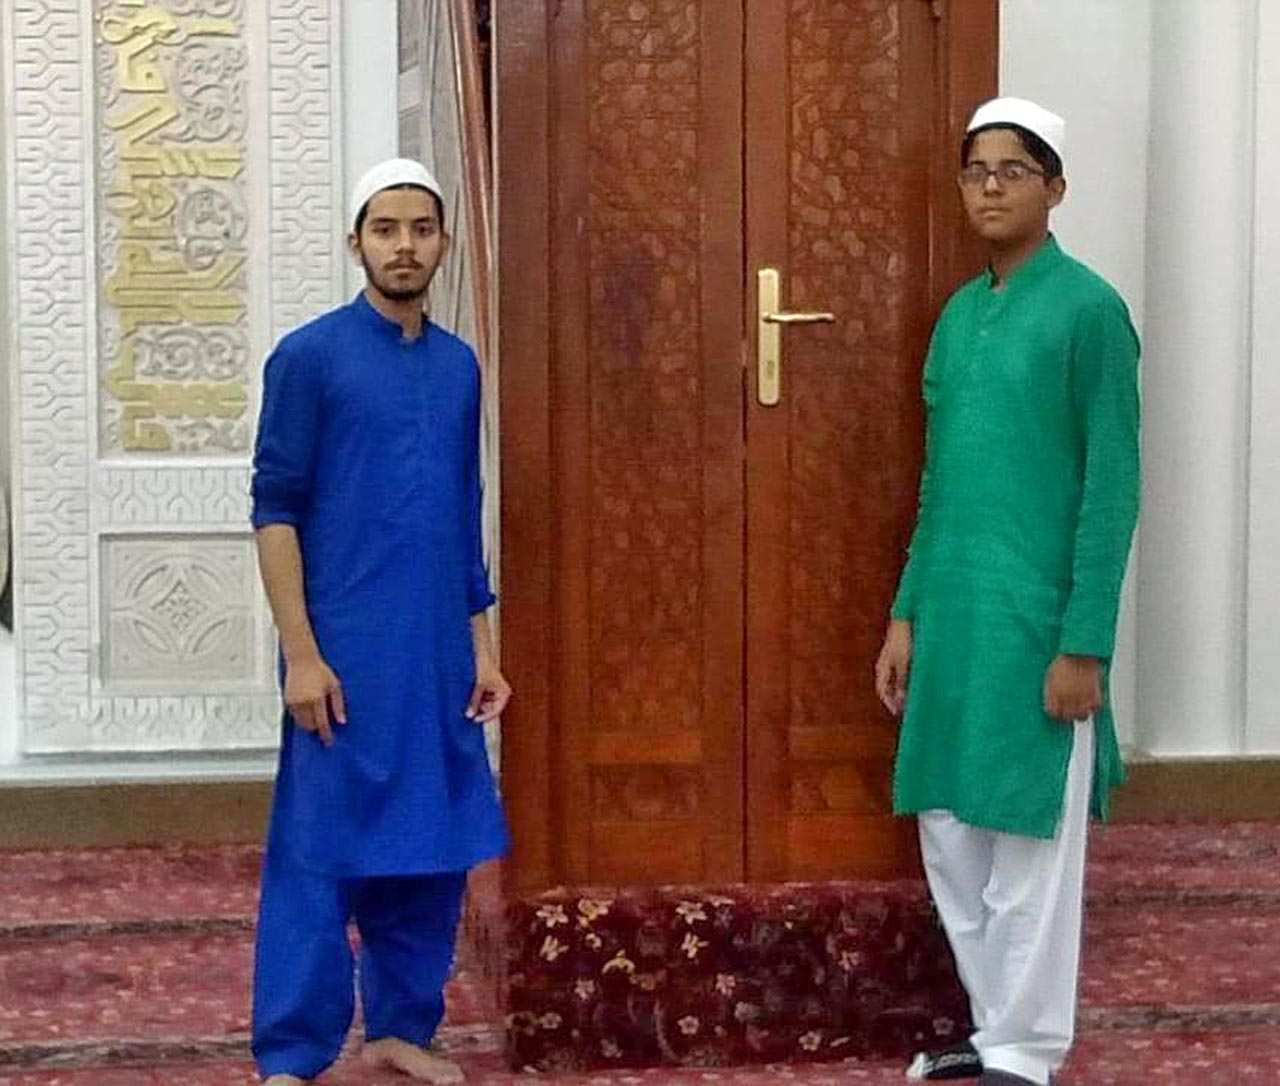 Obaid Ur Rehman and Habib Ur Rehman inside The Masjid-e-Nabwi